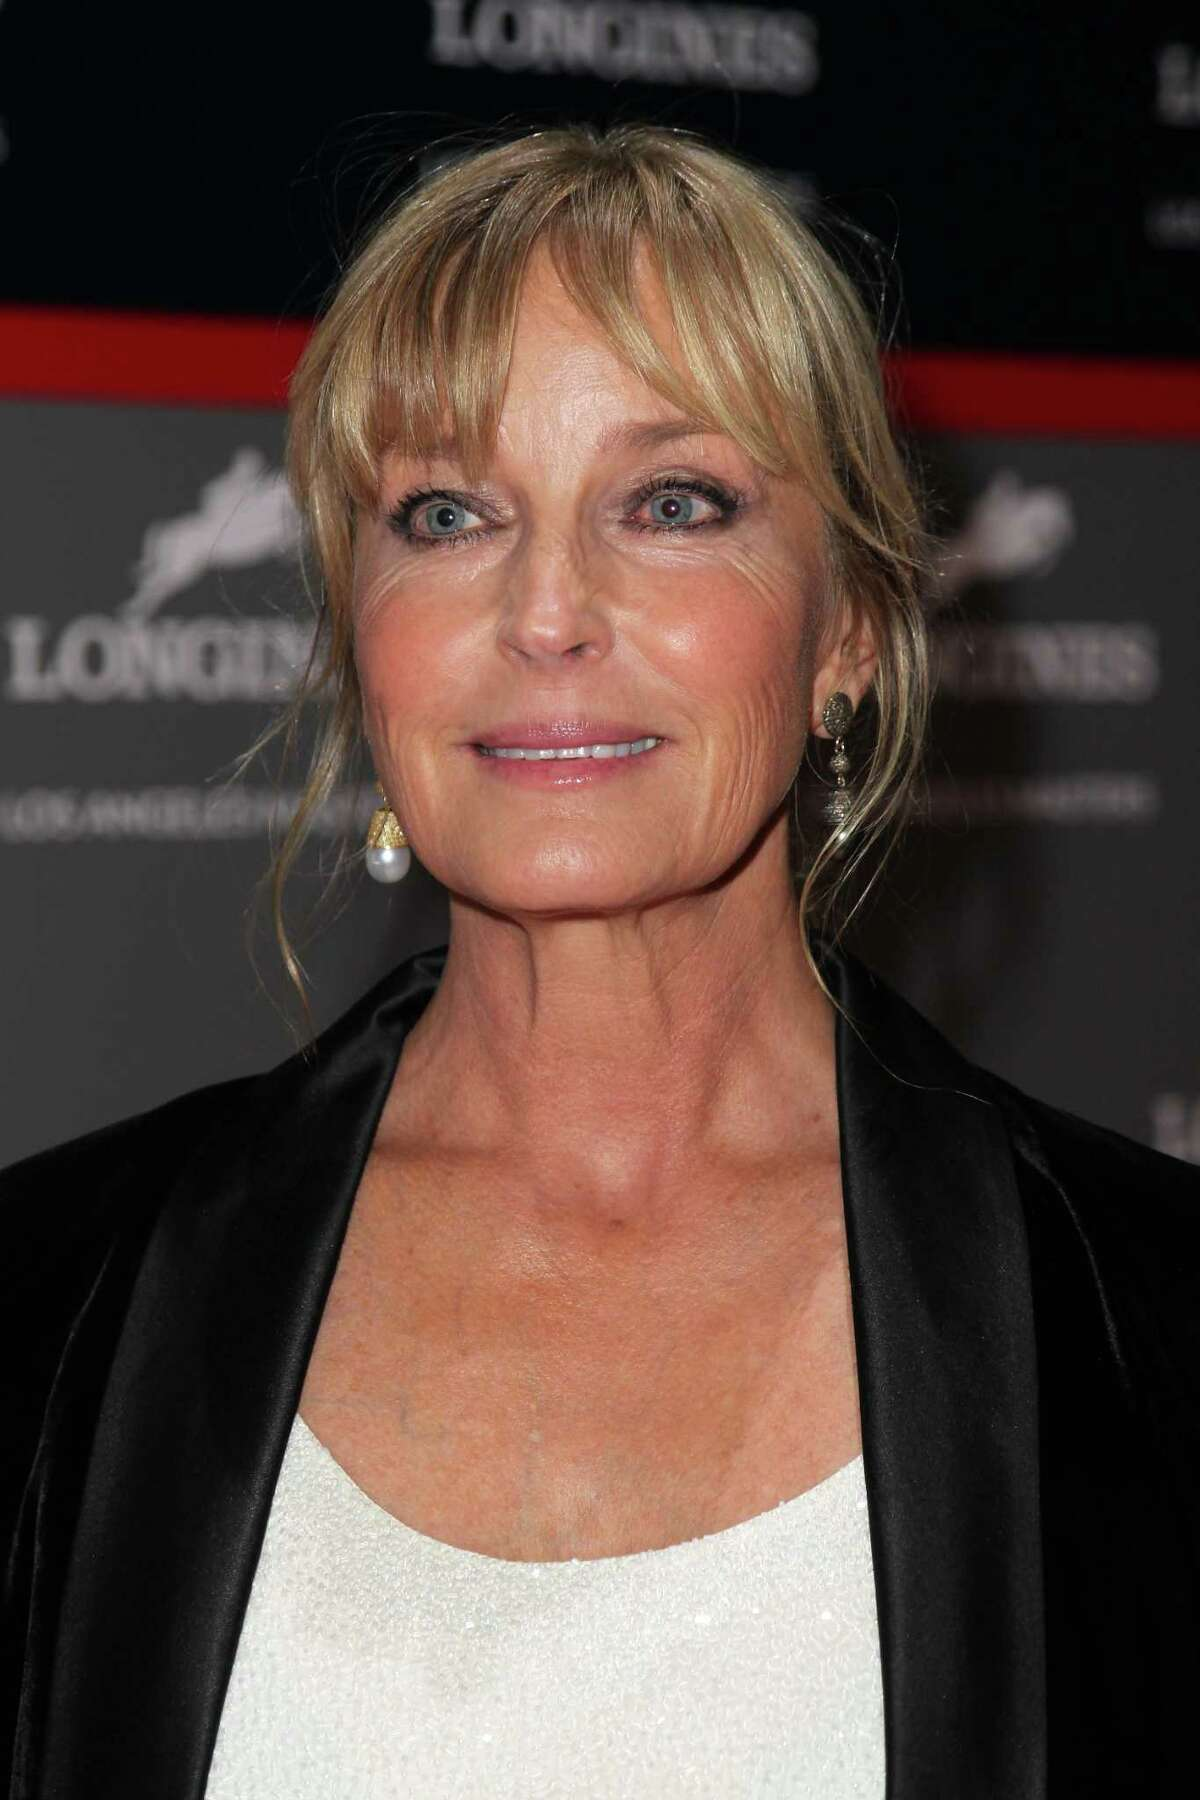 LOS ANGELES, CA - SEPTEMBER 26: Actress Bo Derek arrives at the Longines Los Angeles Masters at Los Angeles Convention Center on September 26, 2014 in Los Angeles, California. (Photo by David Buchan/Getty Images for EEM World) ORG XMIT: 513937715